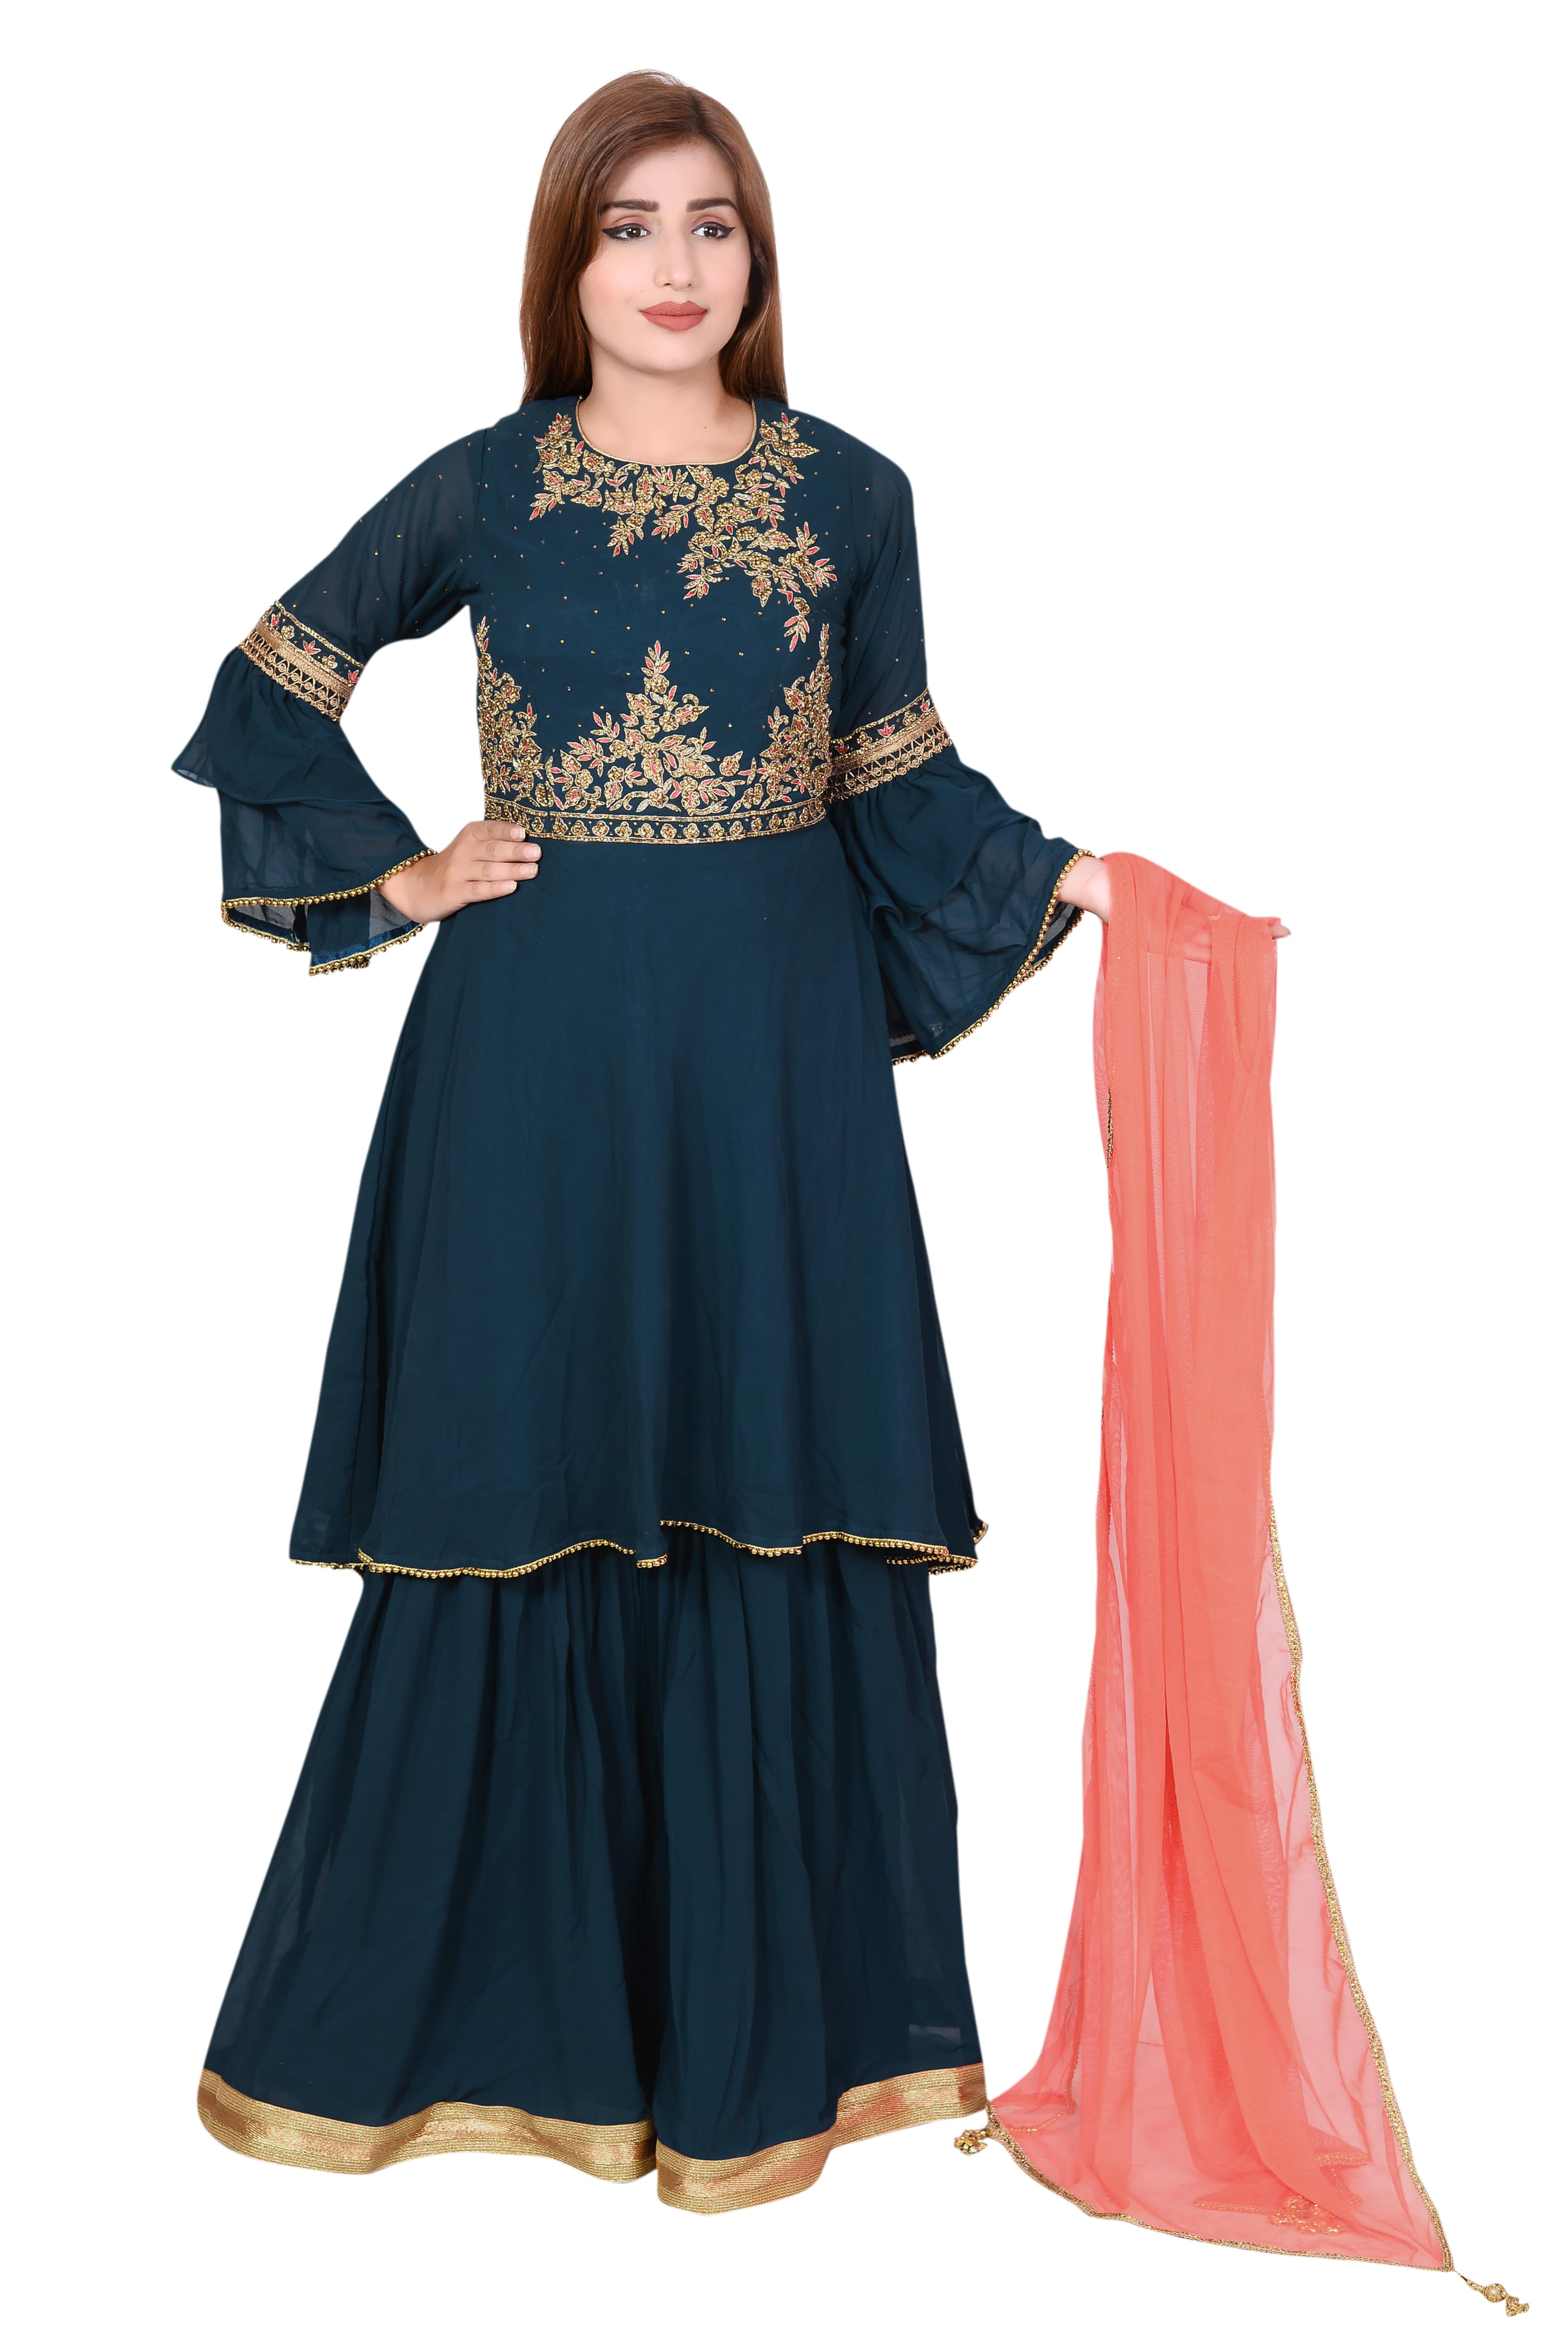 Ladies Ethnic Wear In Saudi Arabia